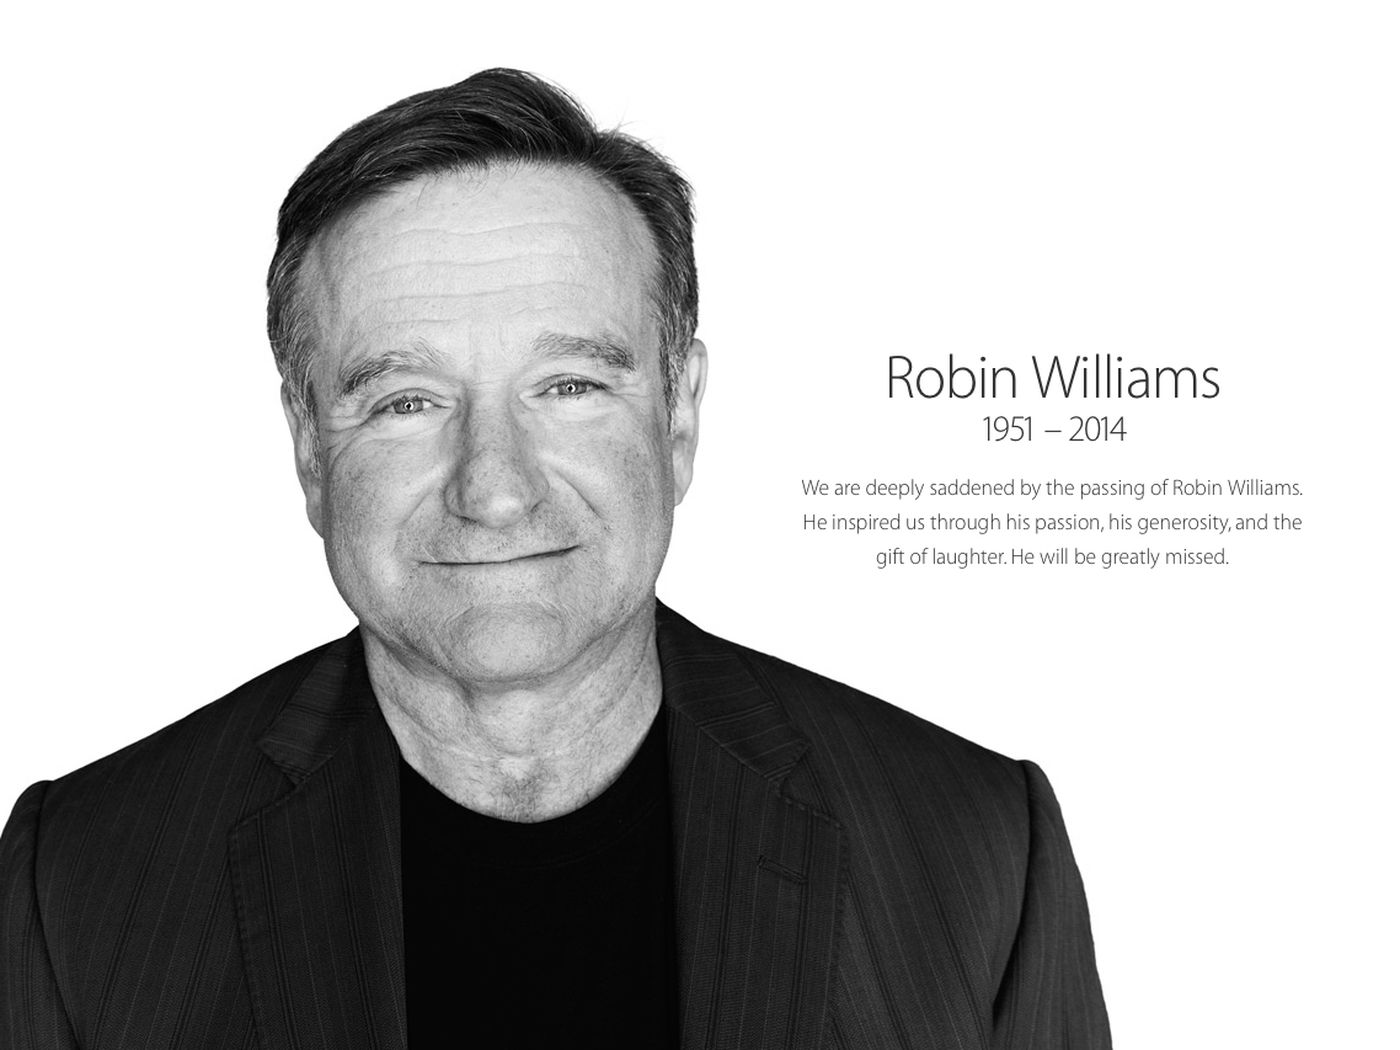 Apple commemorates Robin Williams in homepage tribute - The Verge